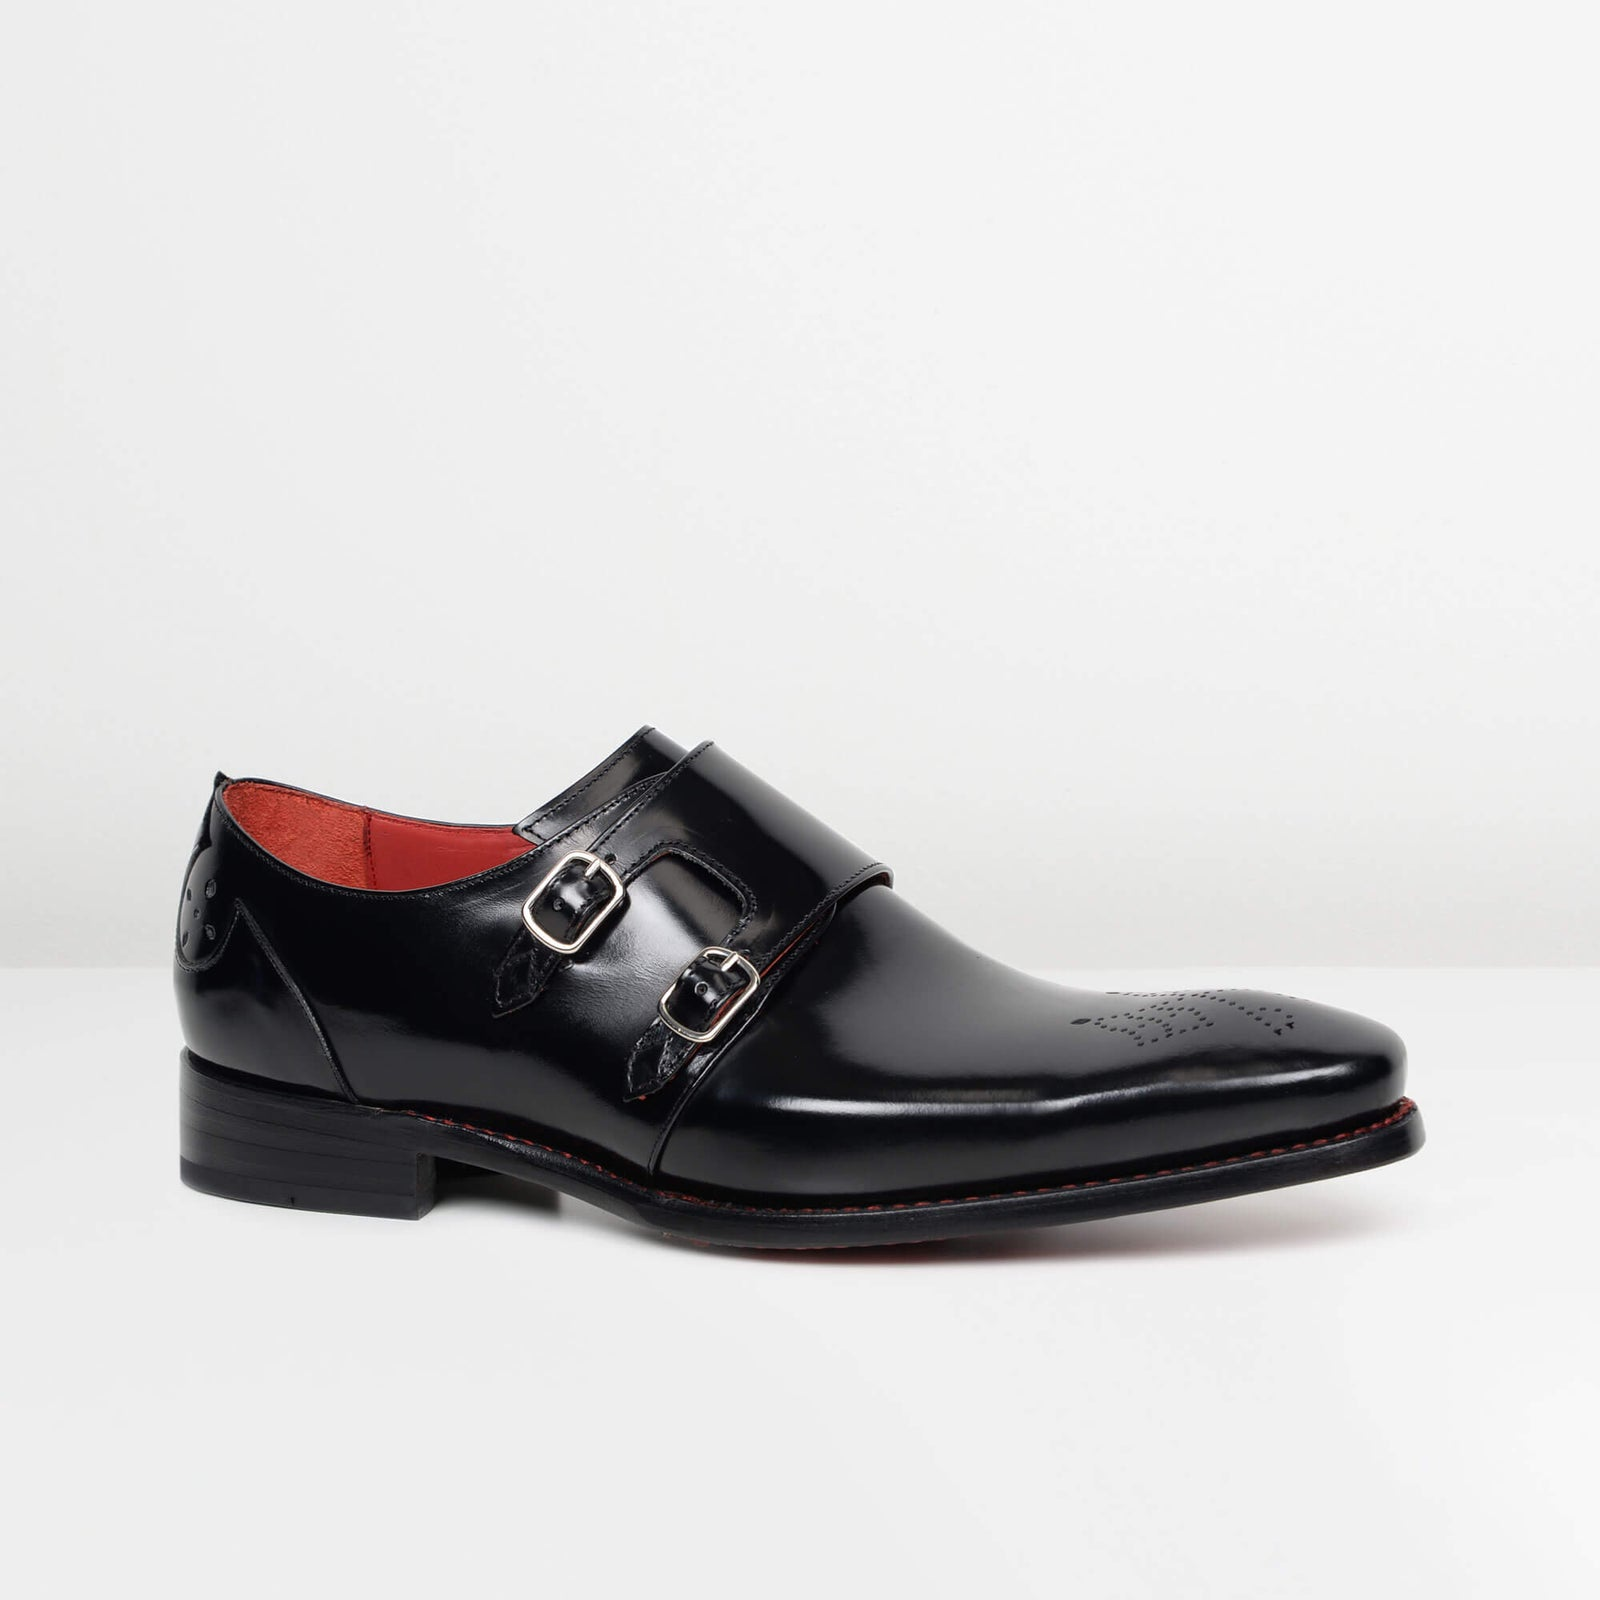 Antique Black Hunger 'Blood' Double Monk Strap Shoes